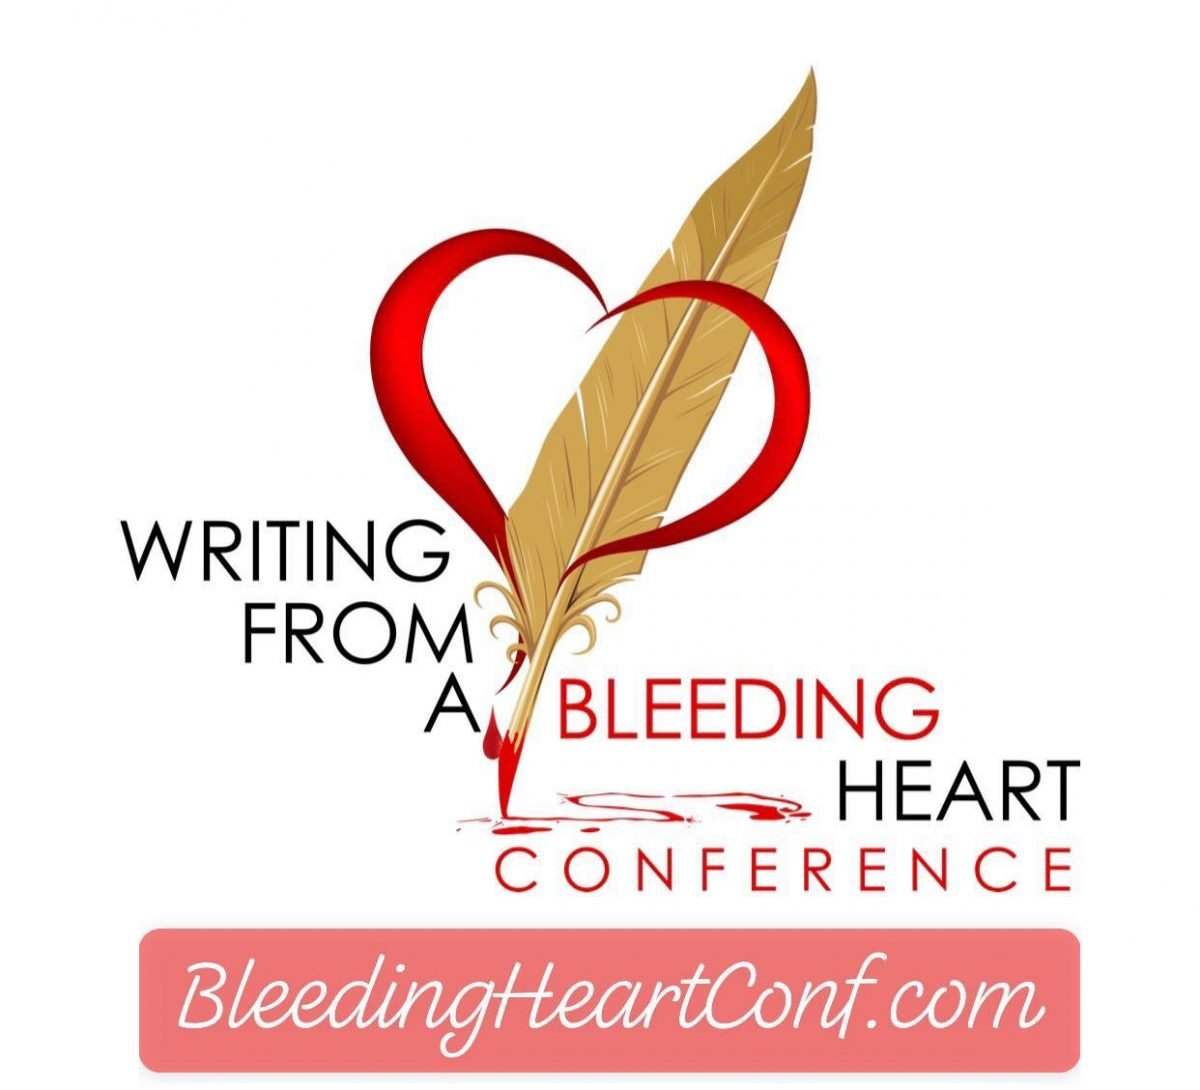 Angela Breidenbach-Speaking in Tennessee at Writing From a Bleeding Heart Conference